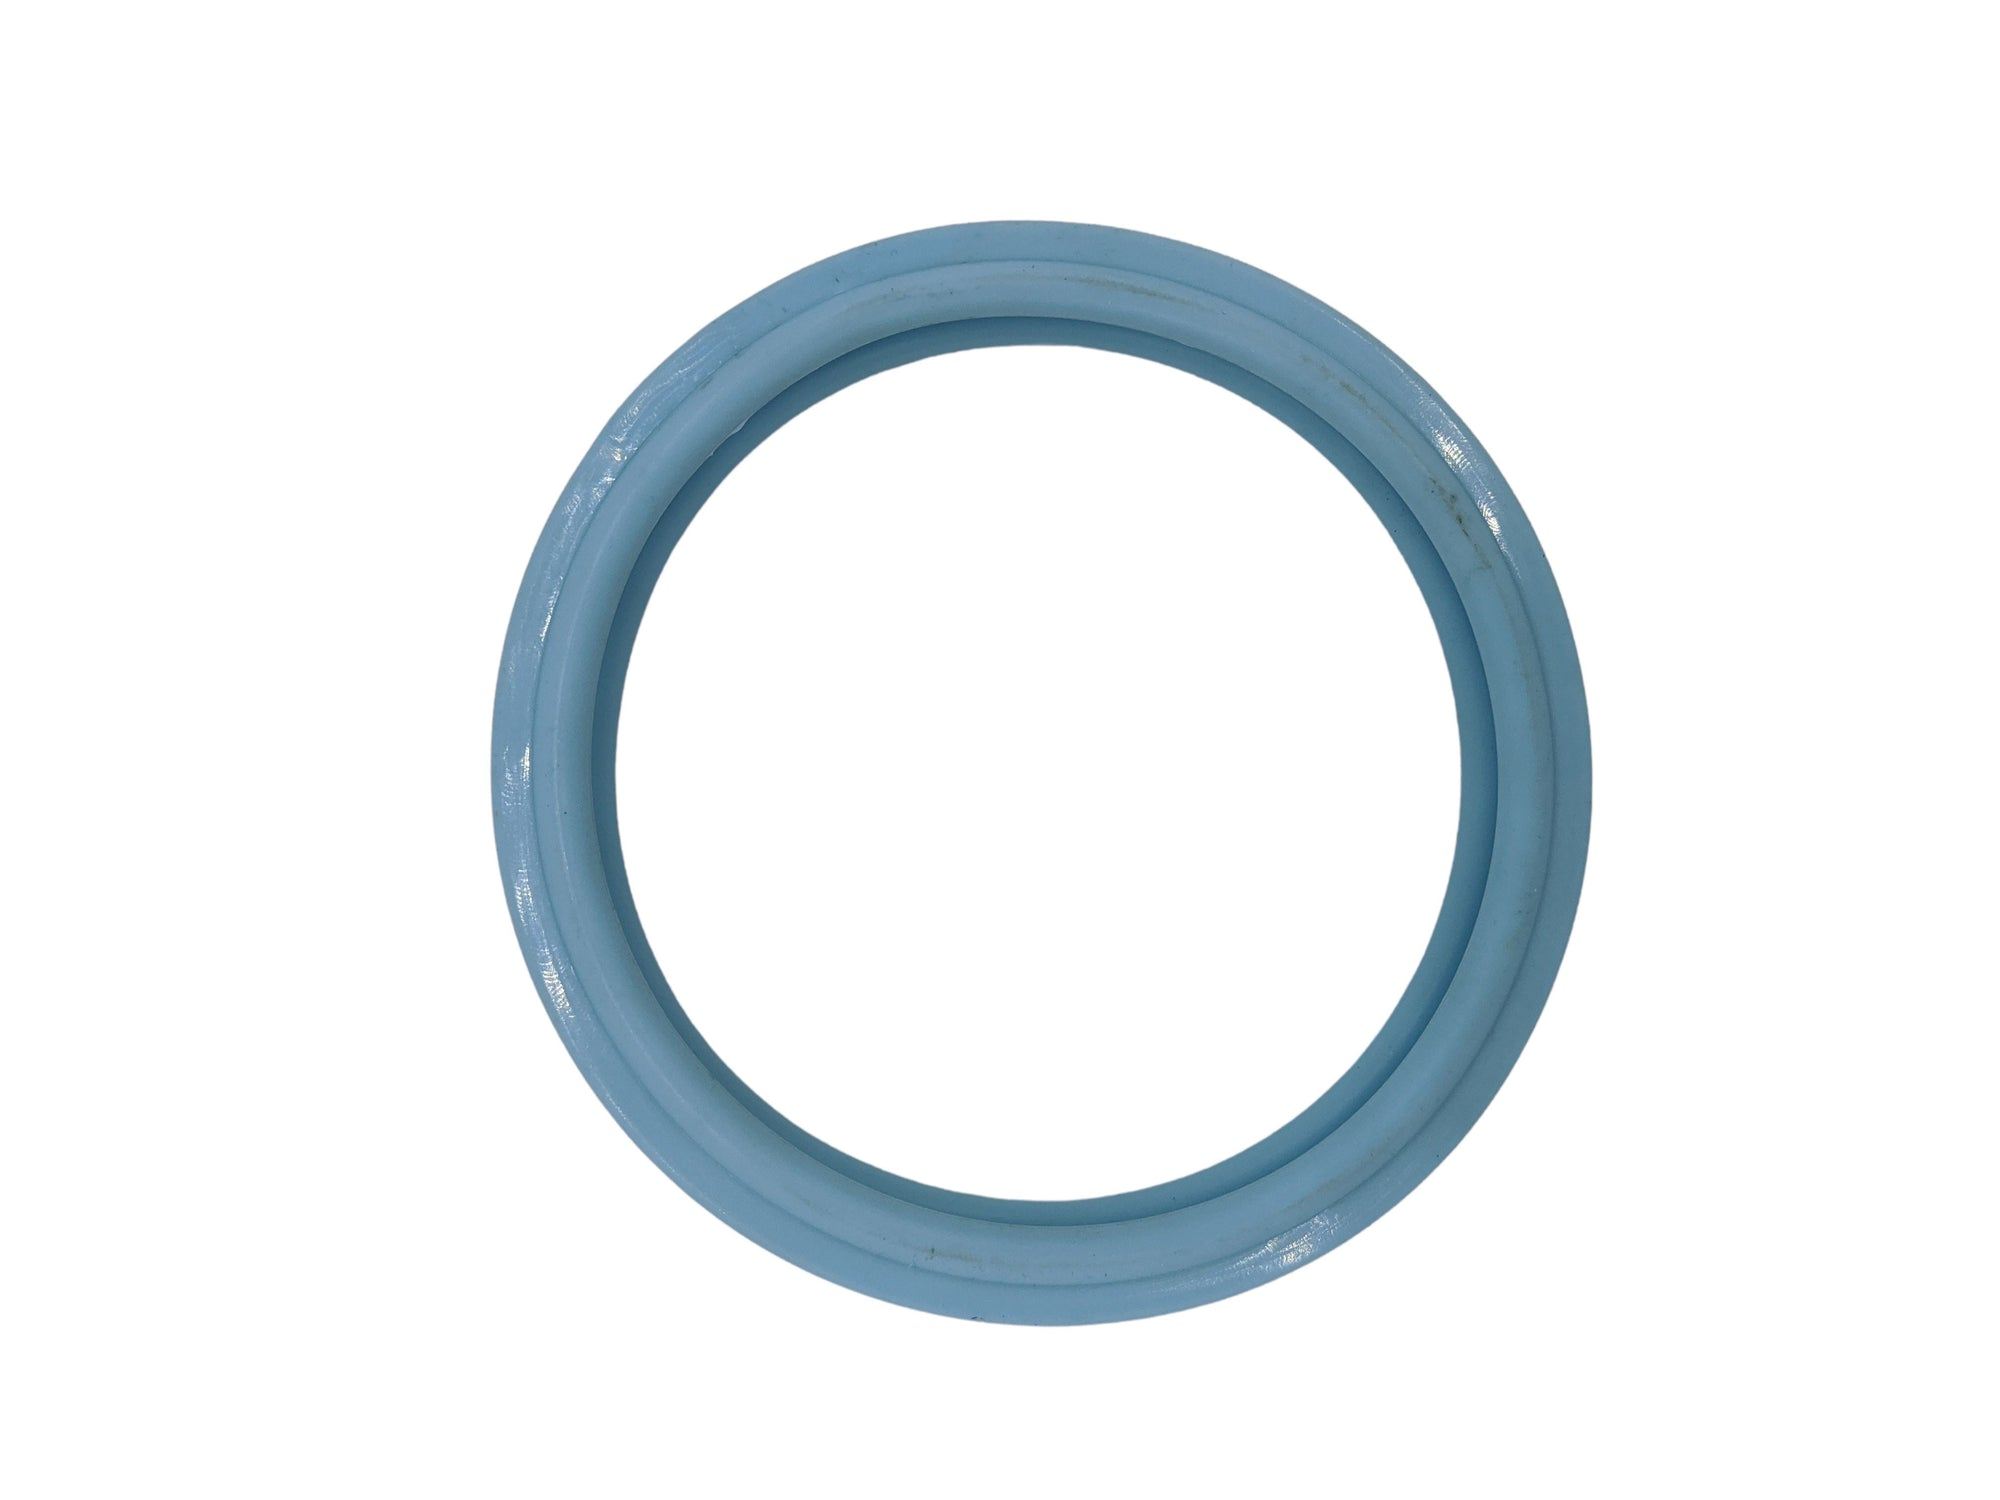 Pentair 79108500 4 Inch Silicone Gasket SpaBrite AquaLight Spa Light Home & Garden > Pool & Spa Pentair